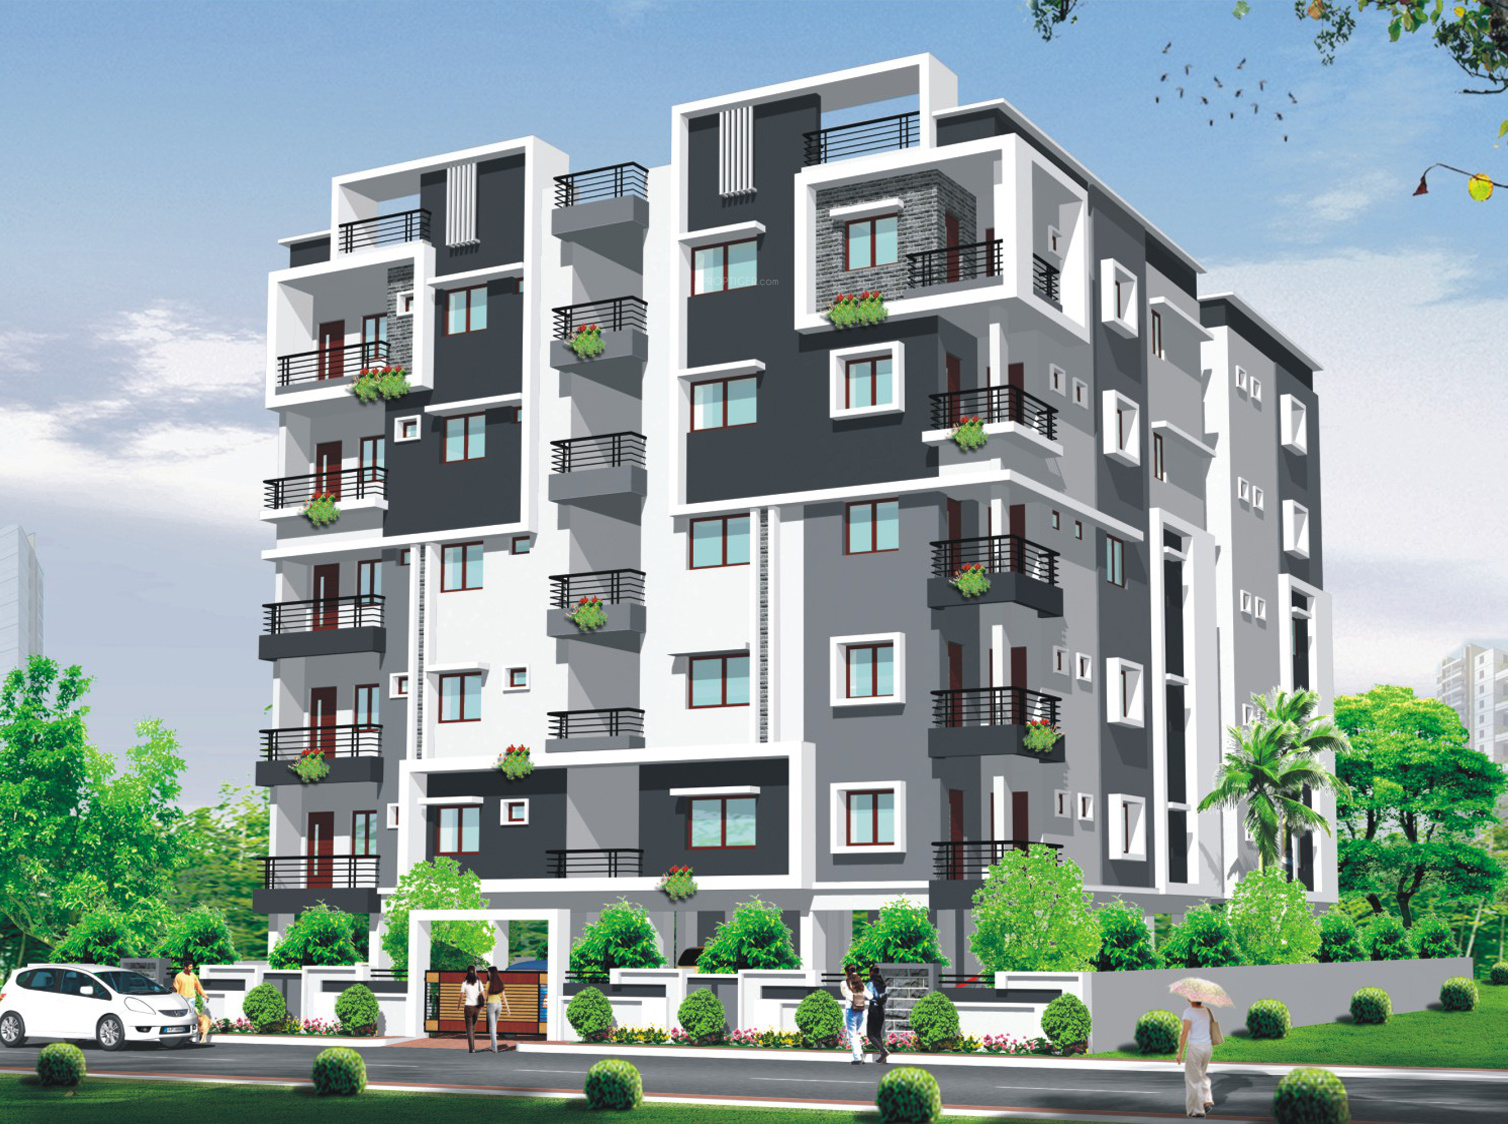 Flats/Apartments in Guntur – Buy Residential Apartments/Flats for on house journal, house investigator, house logo, house fans, house bed, house project, house interior ideas, house planning, house layout, house services, house construction, house painter, house design, house family, house plans, house architect, house powerpoint, house investor, house styles, house worker,